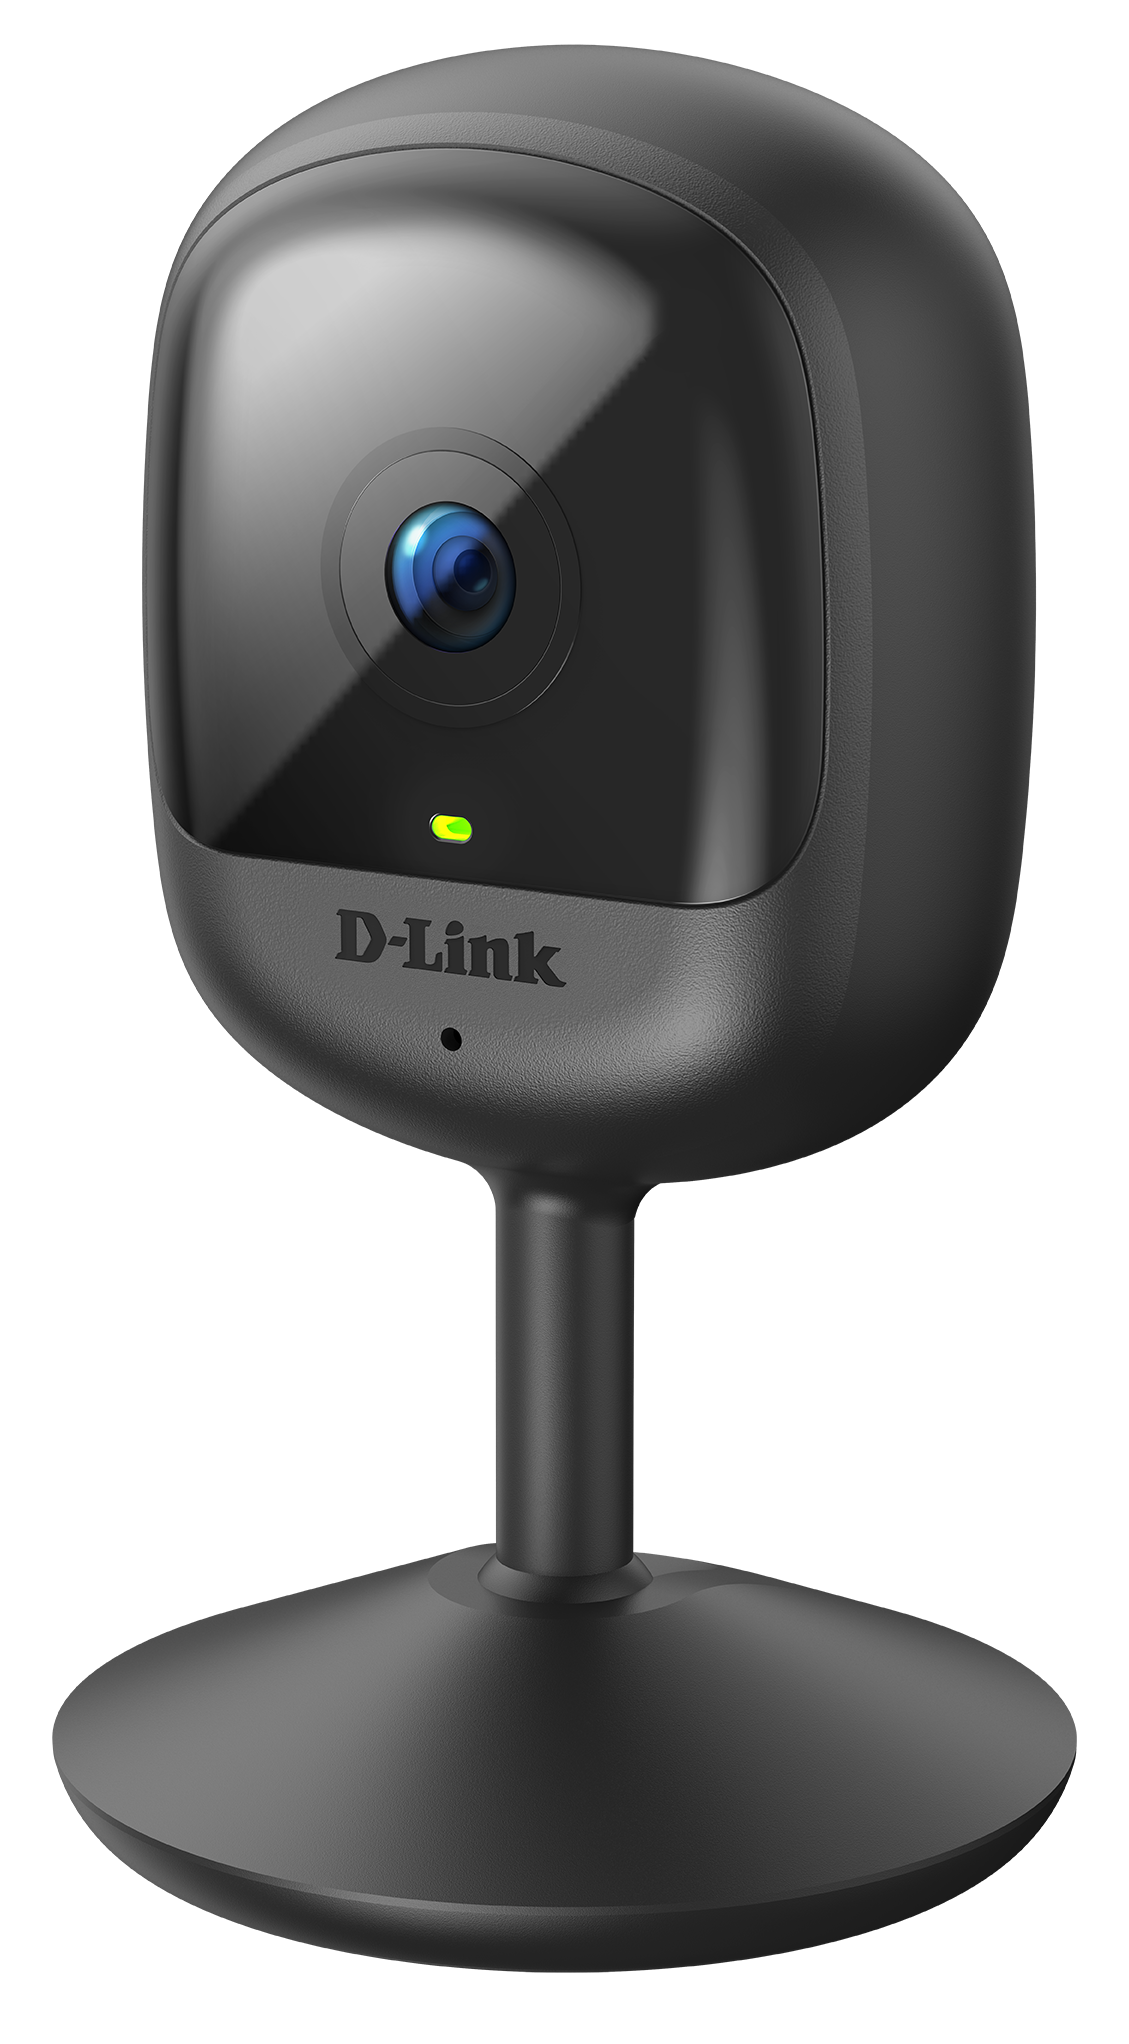 DCS-6100LH	Compact Full HD Wi-Fi Camera - left side view.